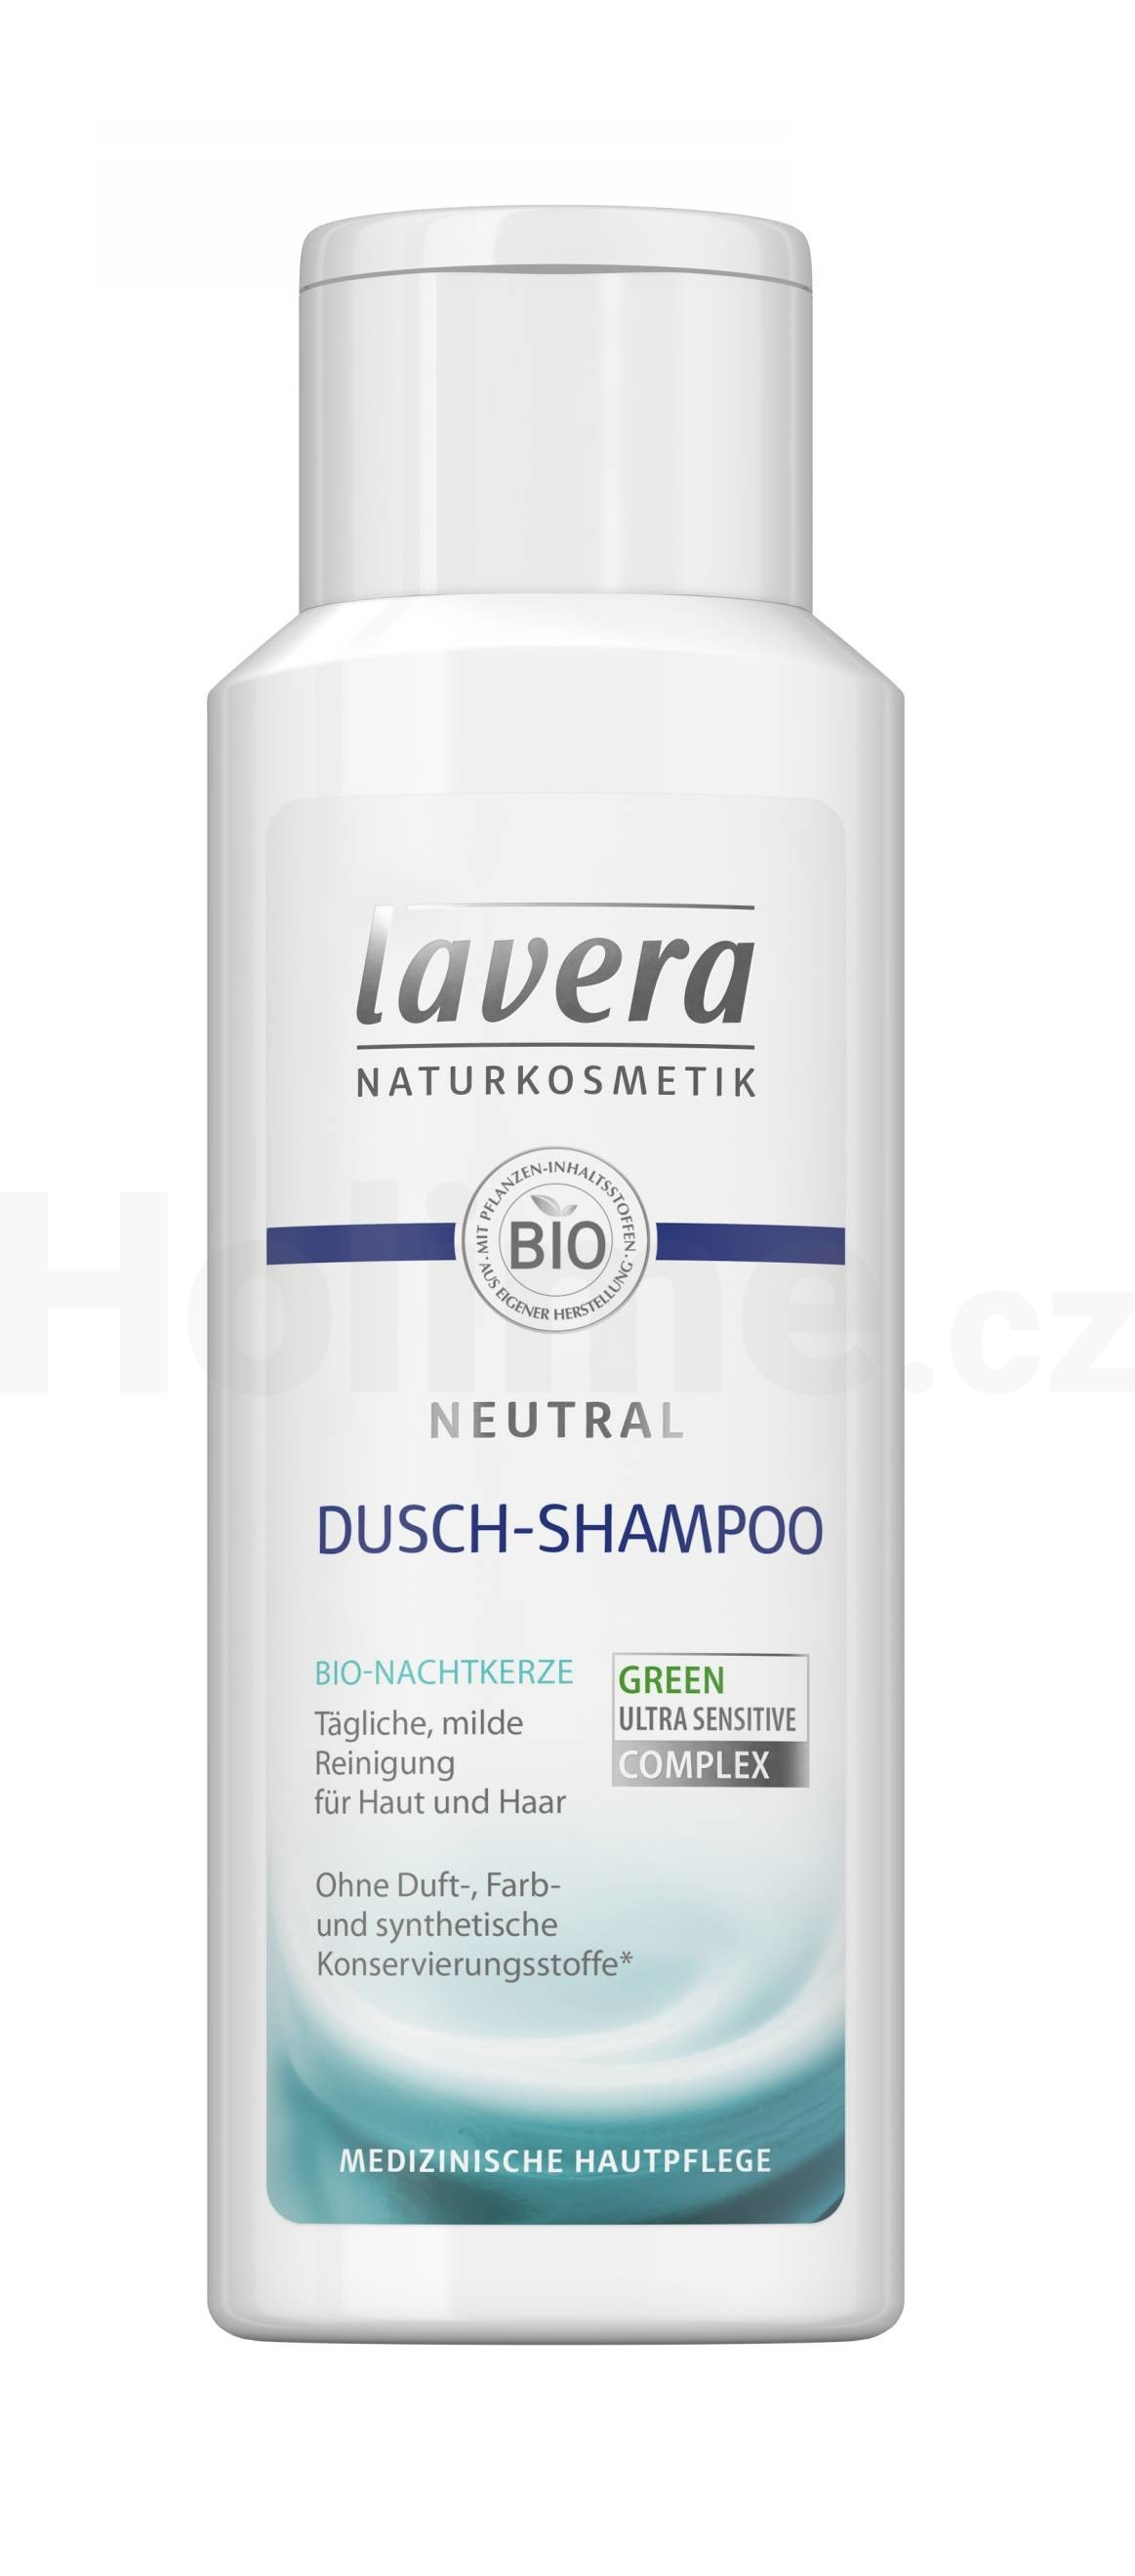 Lavera Neutral sprchový gel a šampon 200 ml